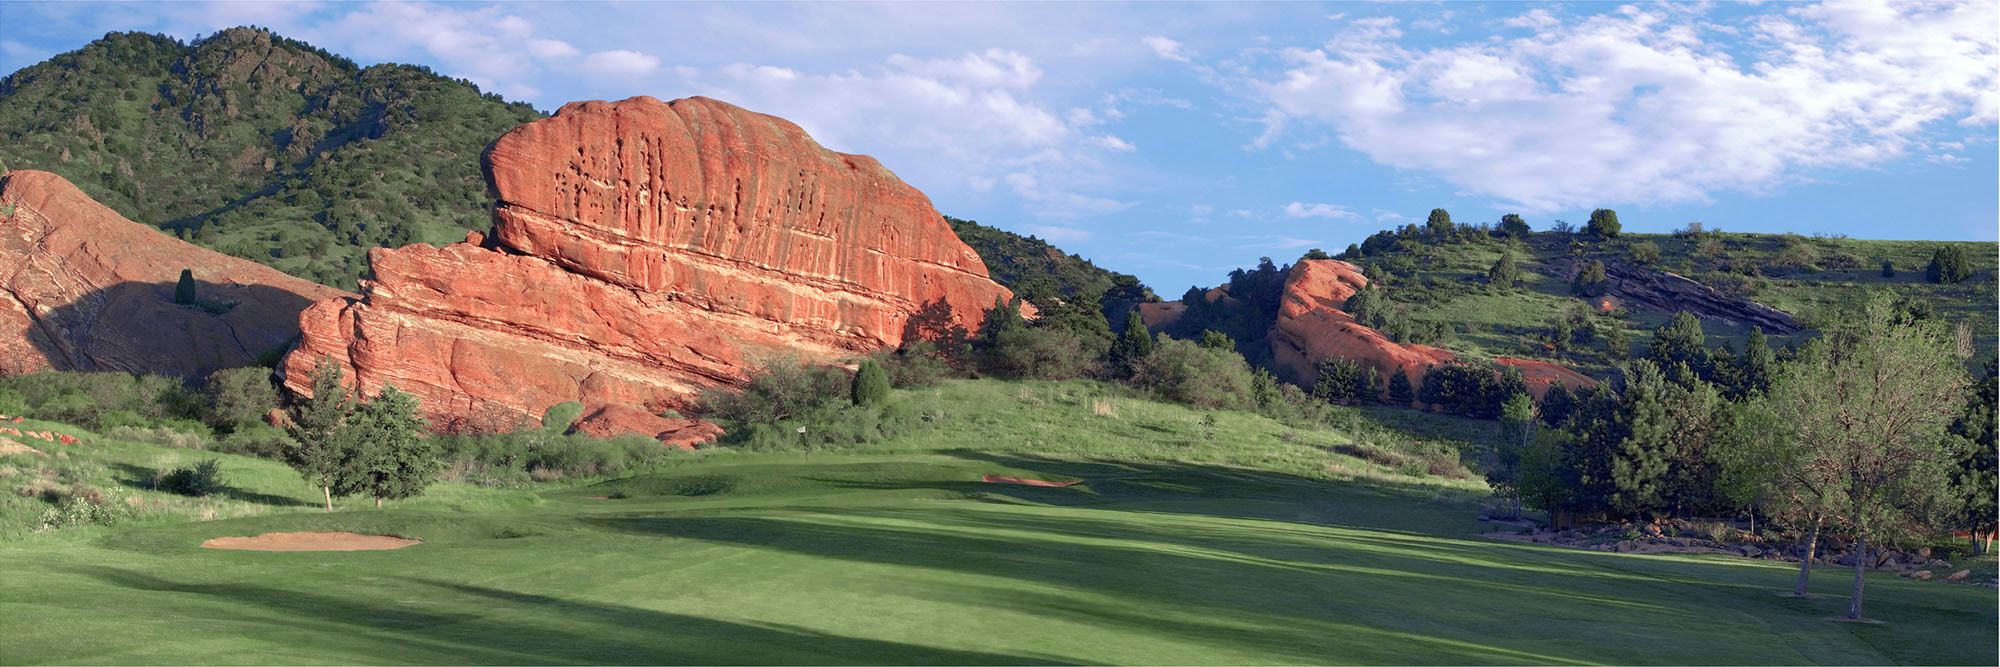 Golf Course Image - Red Rocks Country Club No. 16 Whale Rock